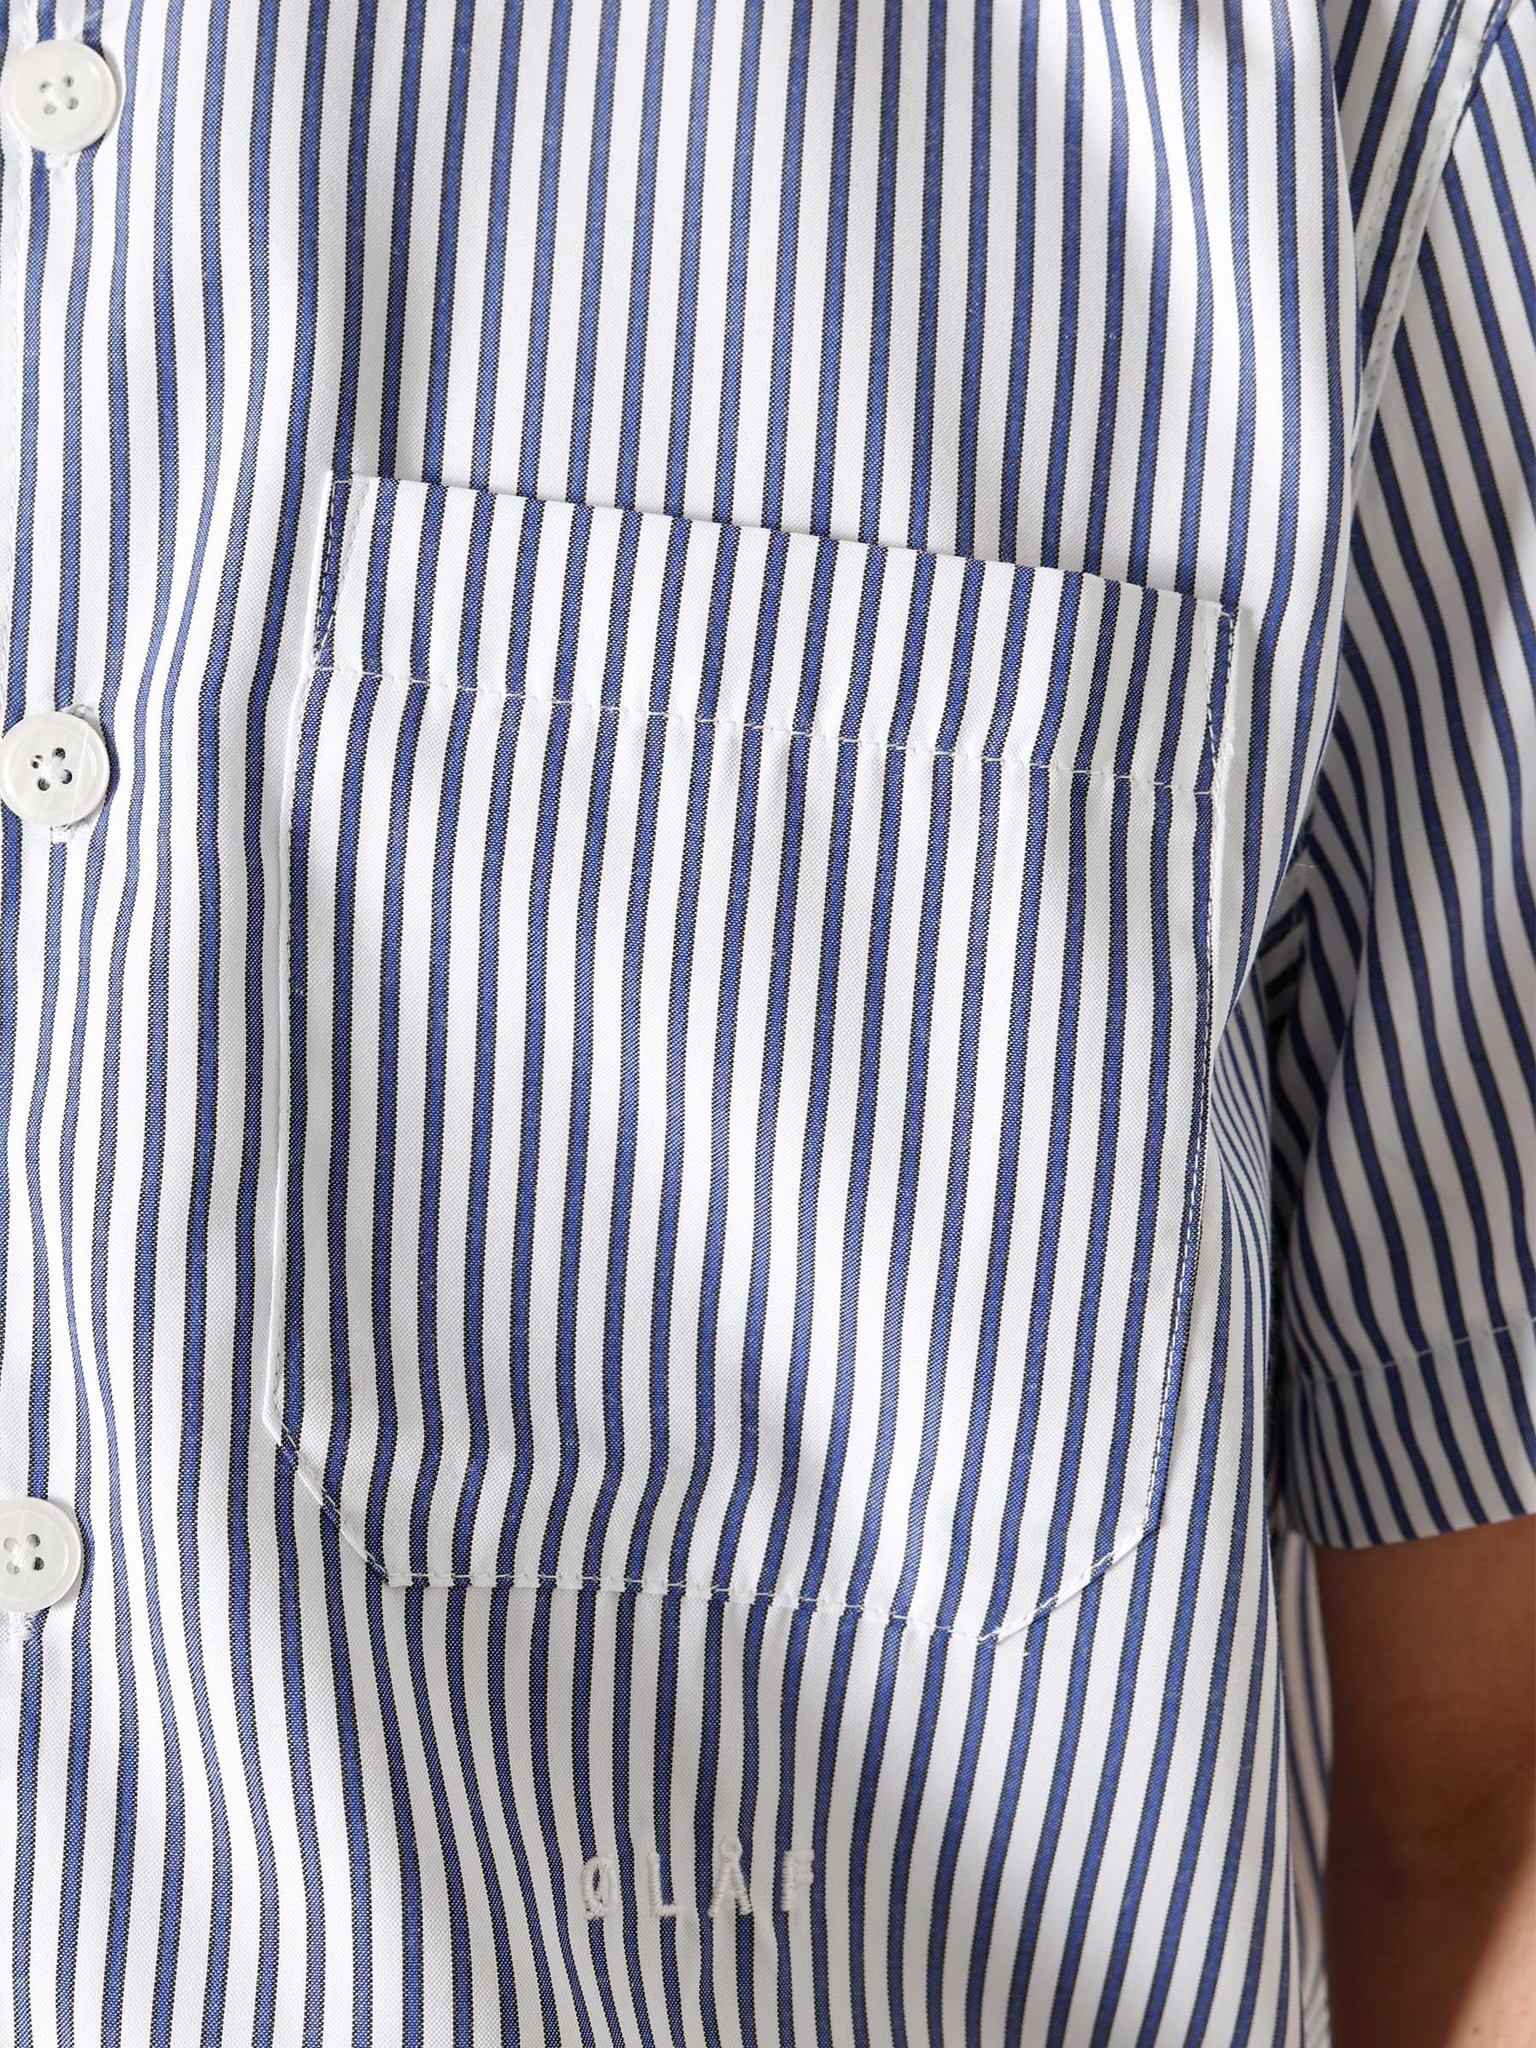 Olaf Hussein Olaf Hussein OH Stripe Shirt Navy White